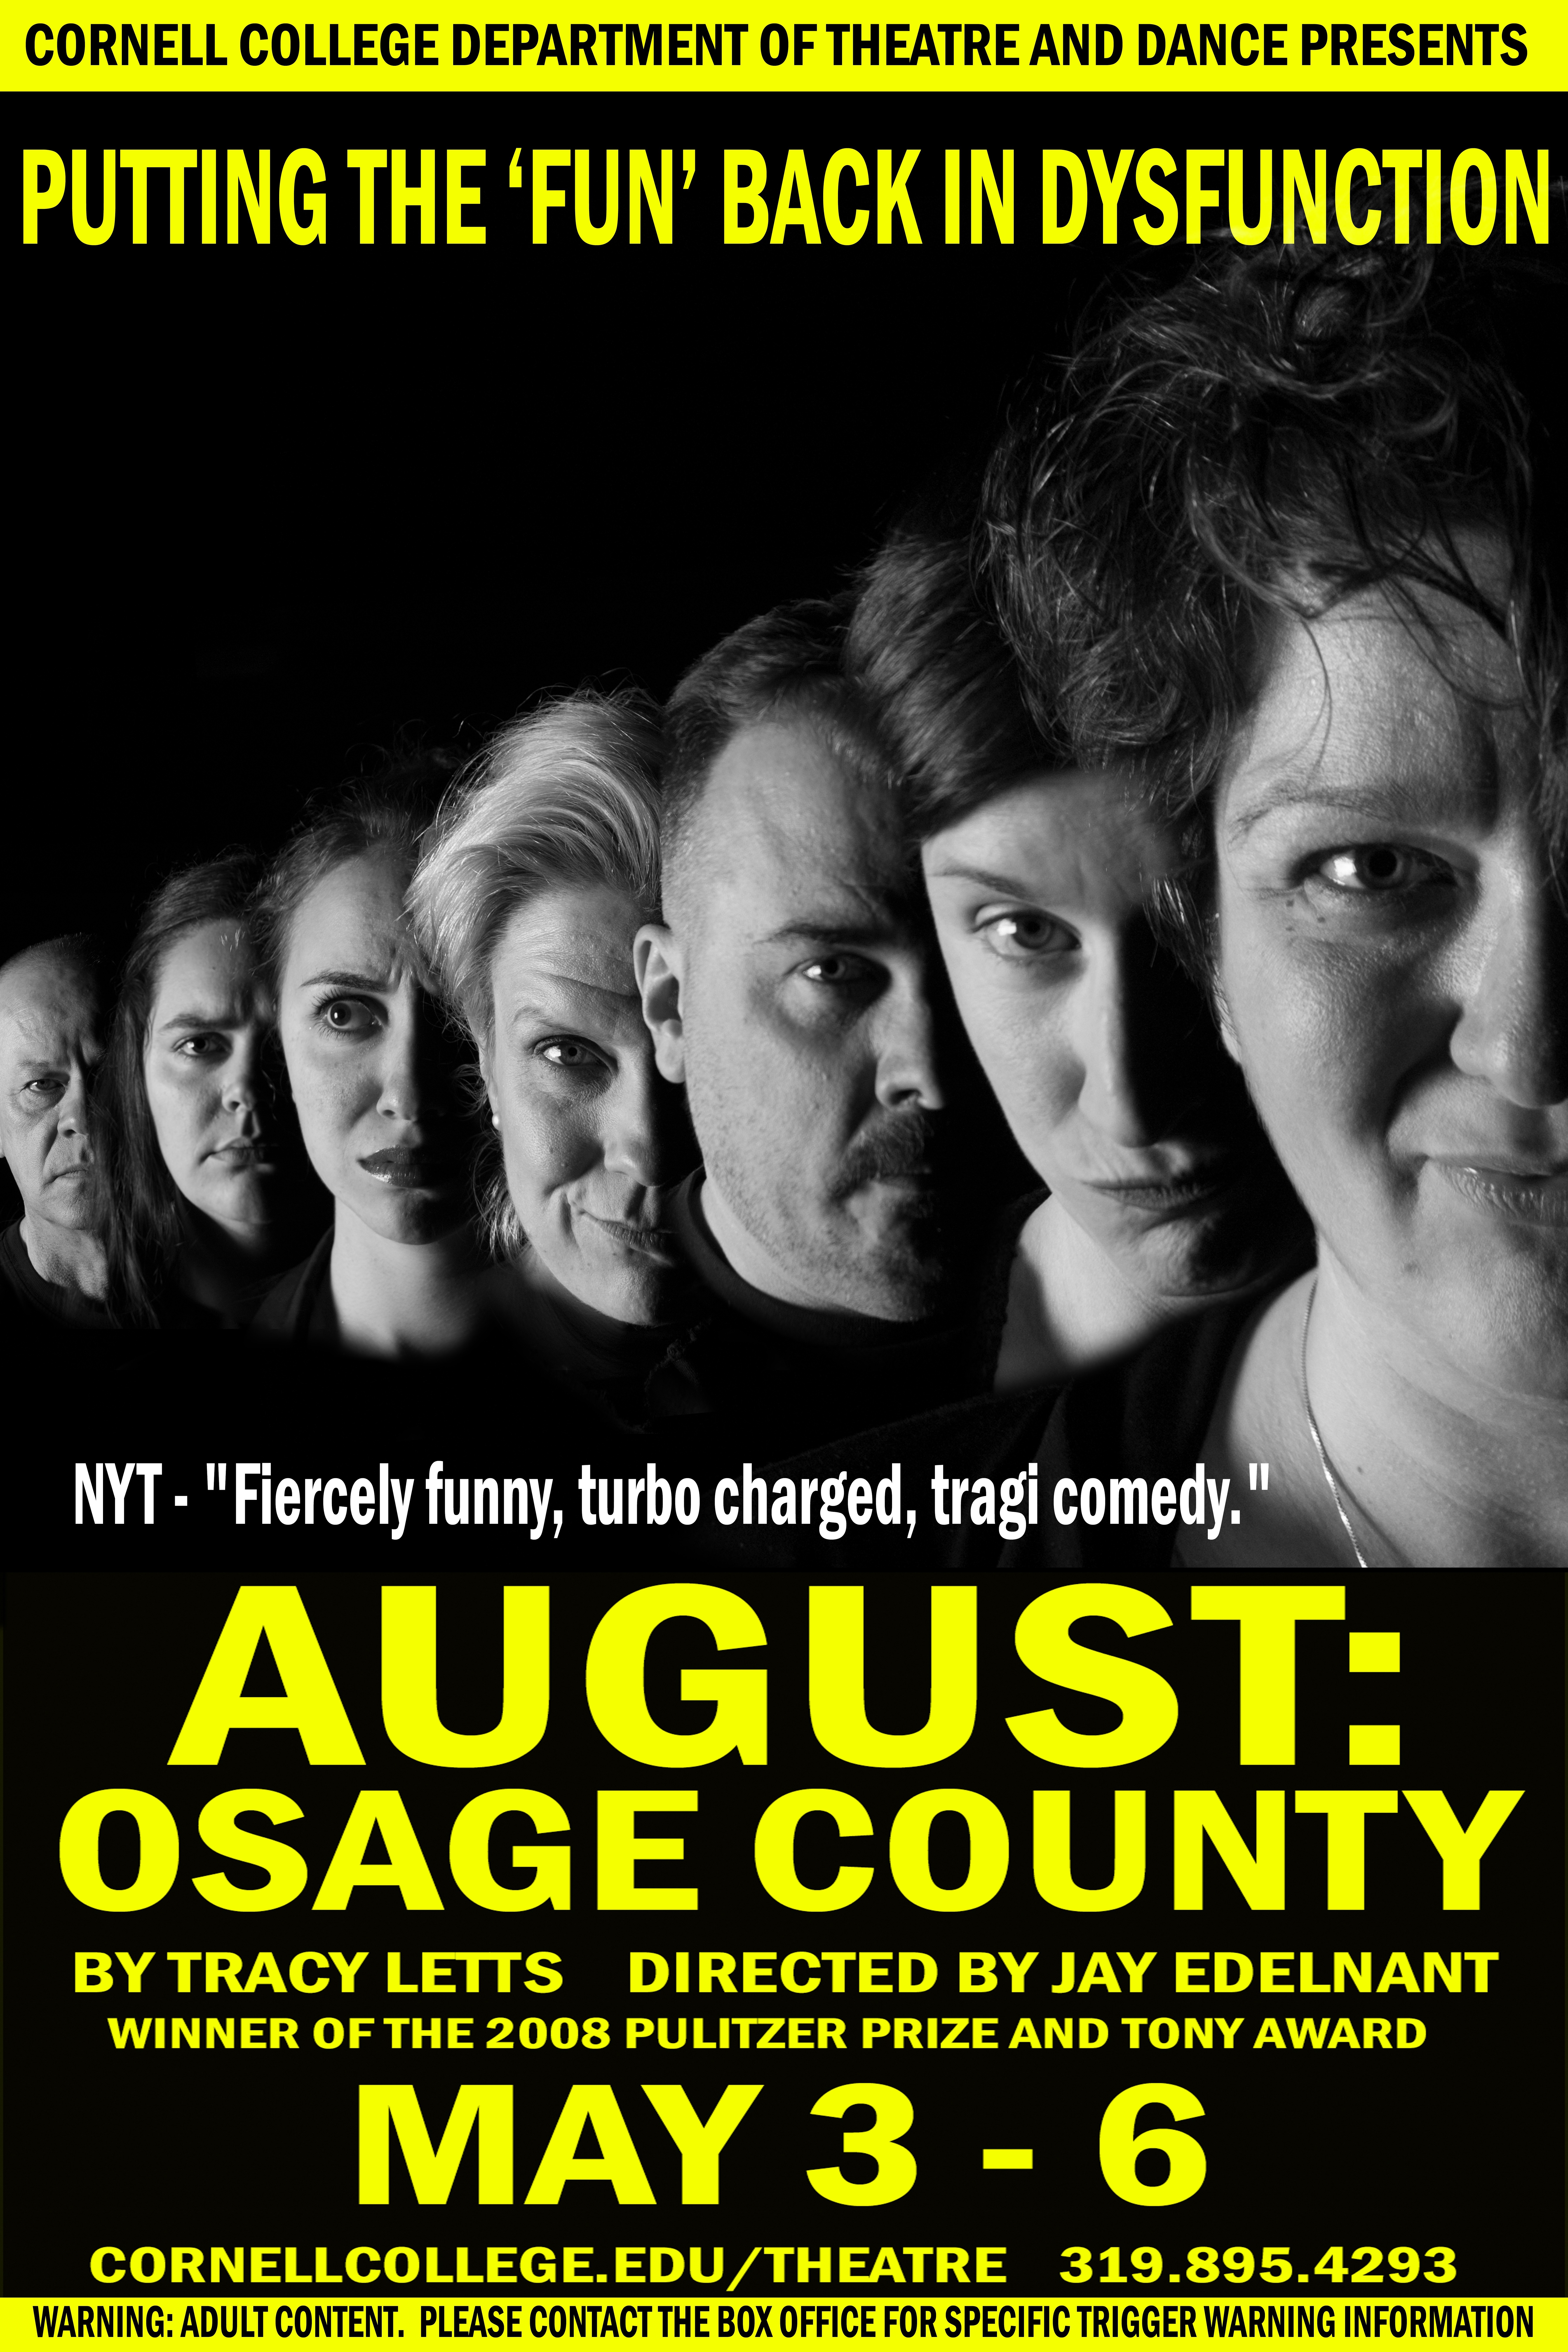 August osage county poster